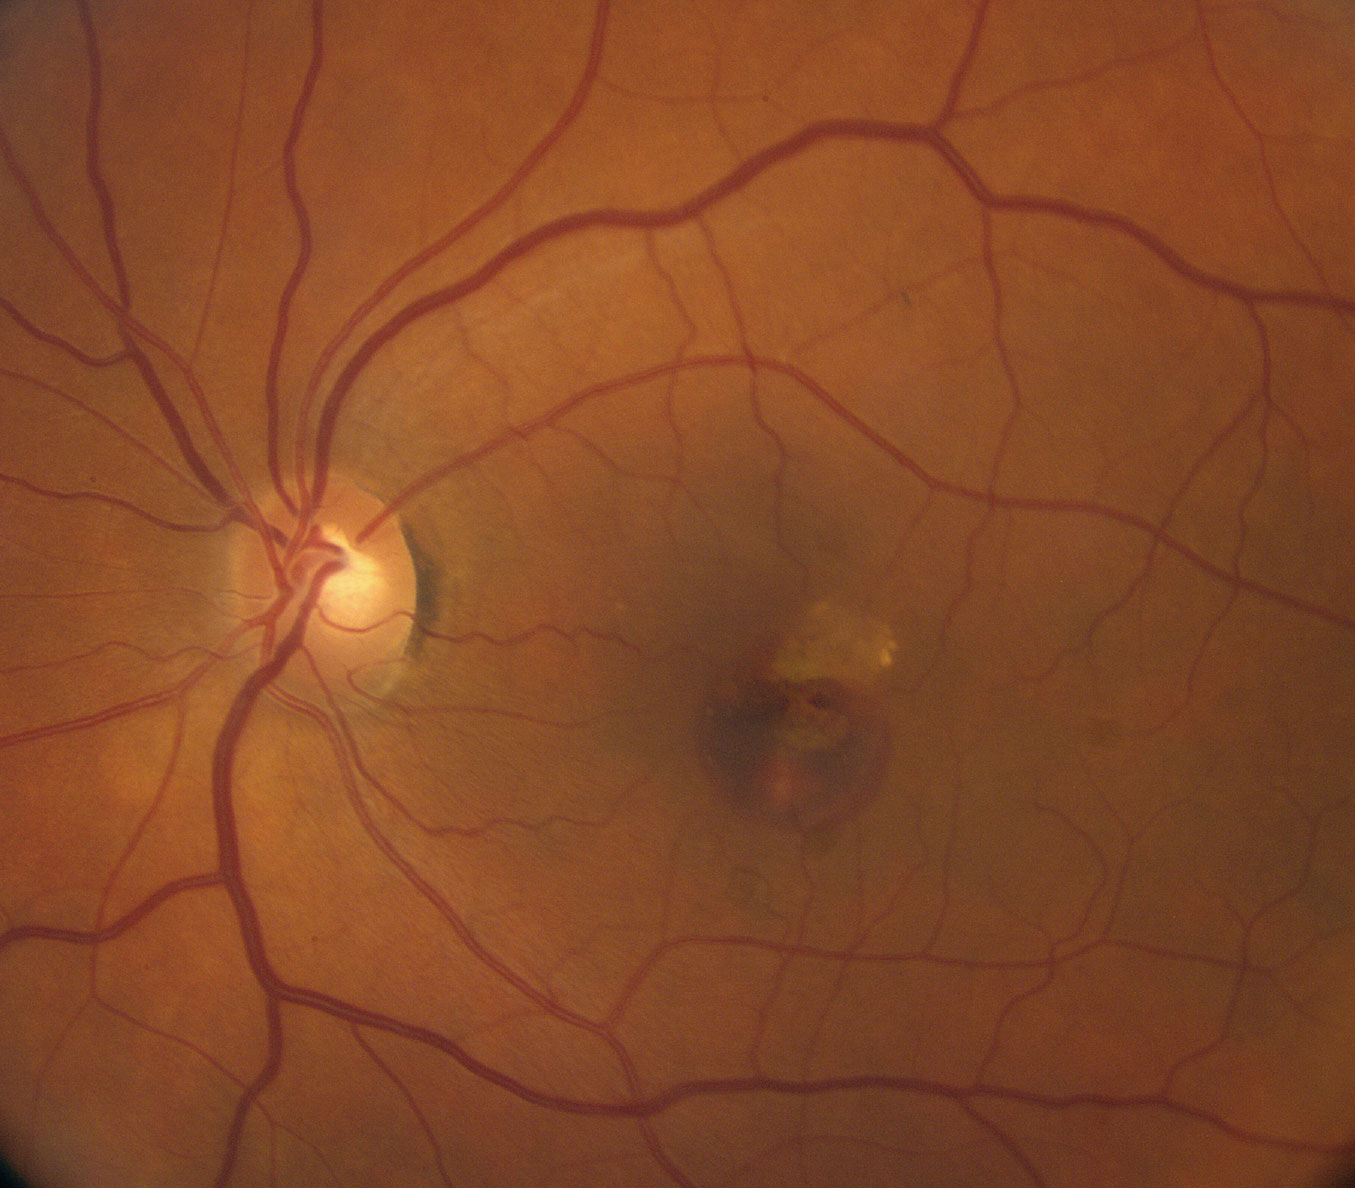 This fundus photo shows our patient's left eye. How do you account for the hemorrhage?